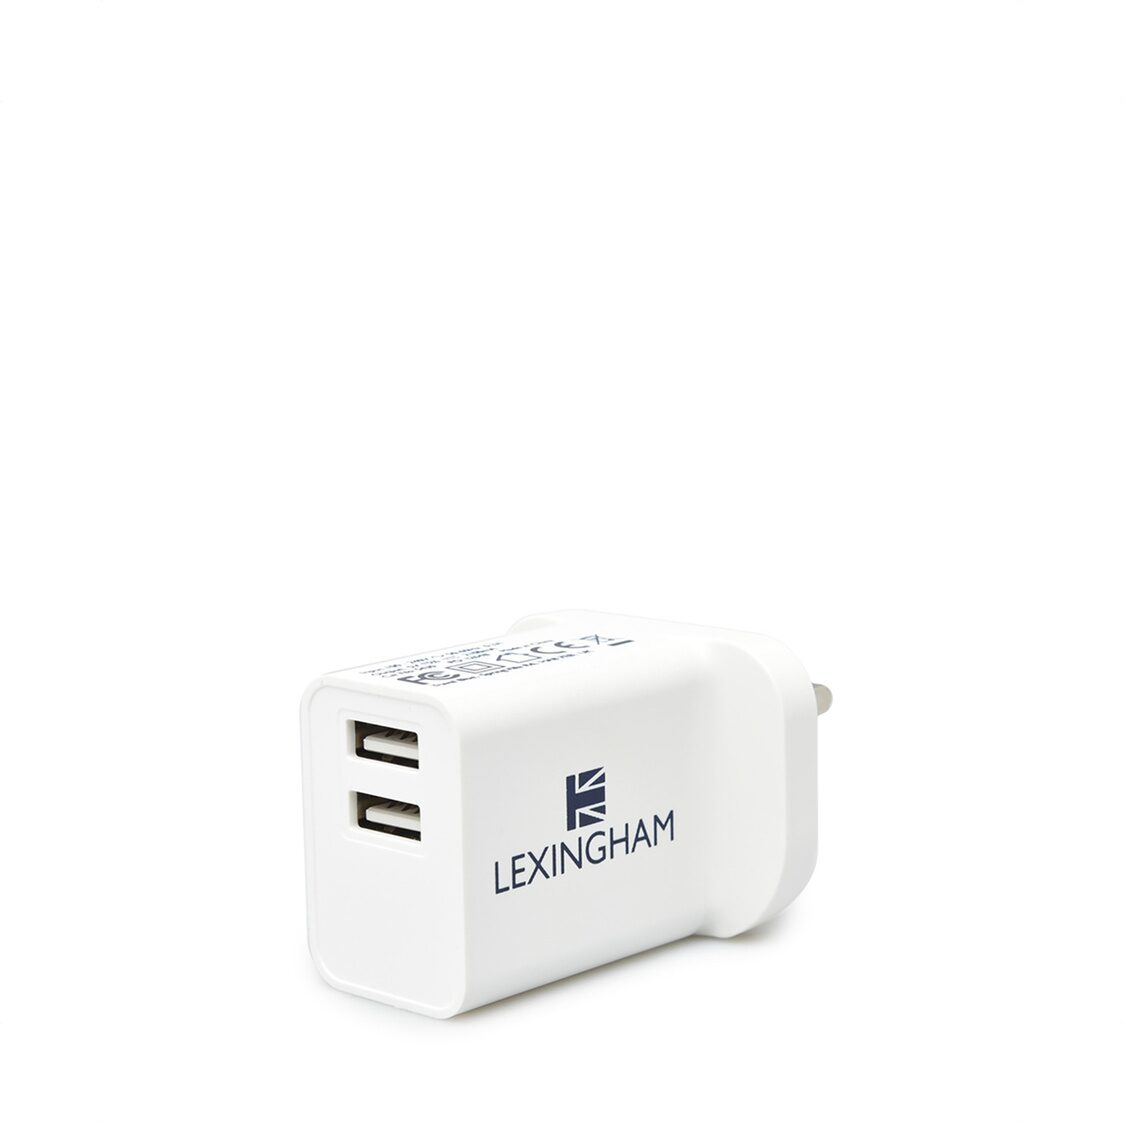 Lexingham Wall Usb Charger - Uk